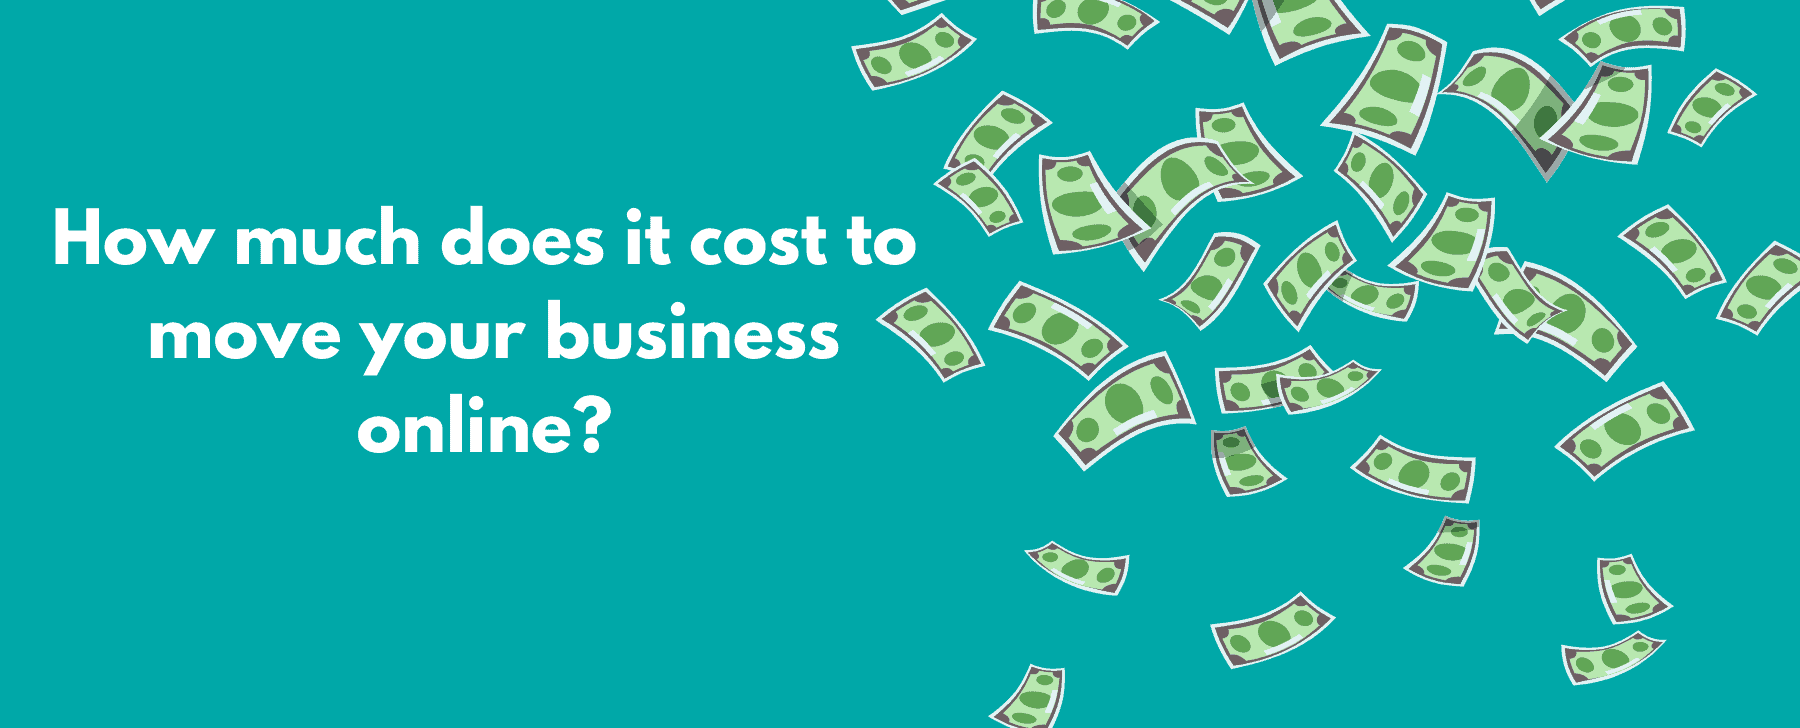 How much does it cost to move your business online?